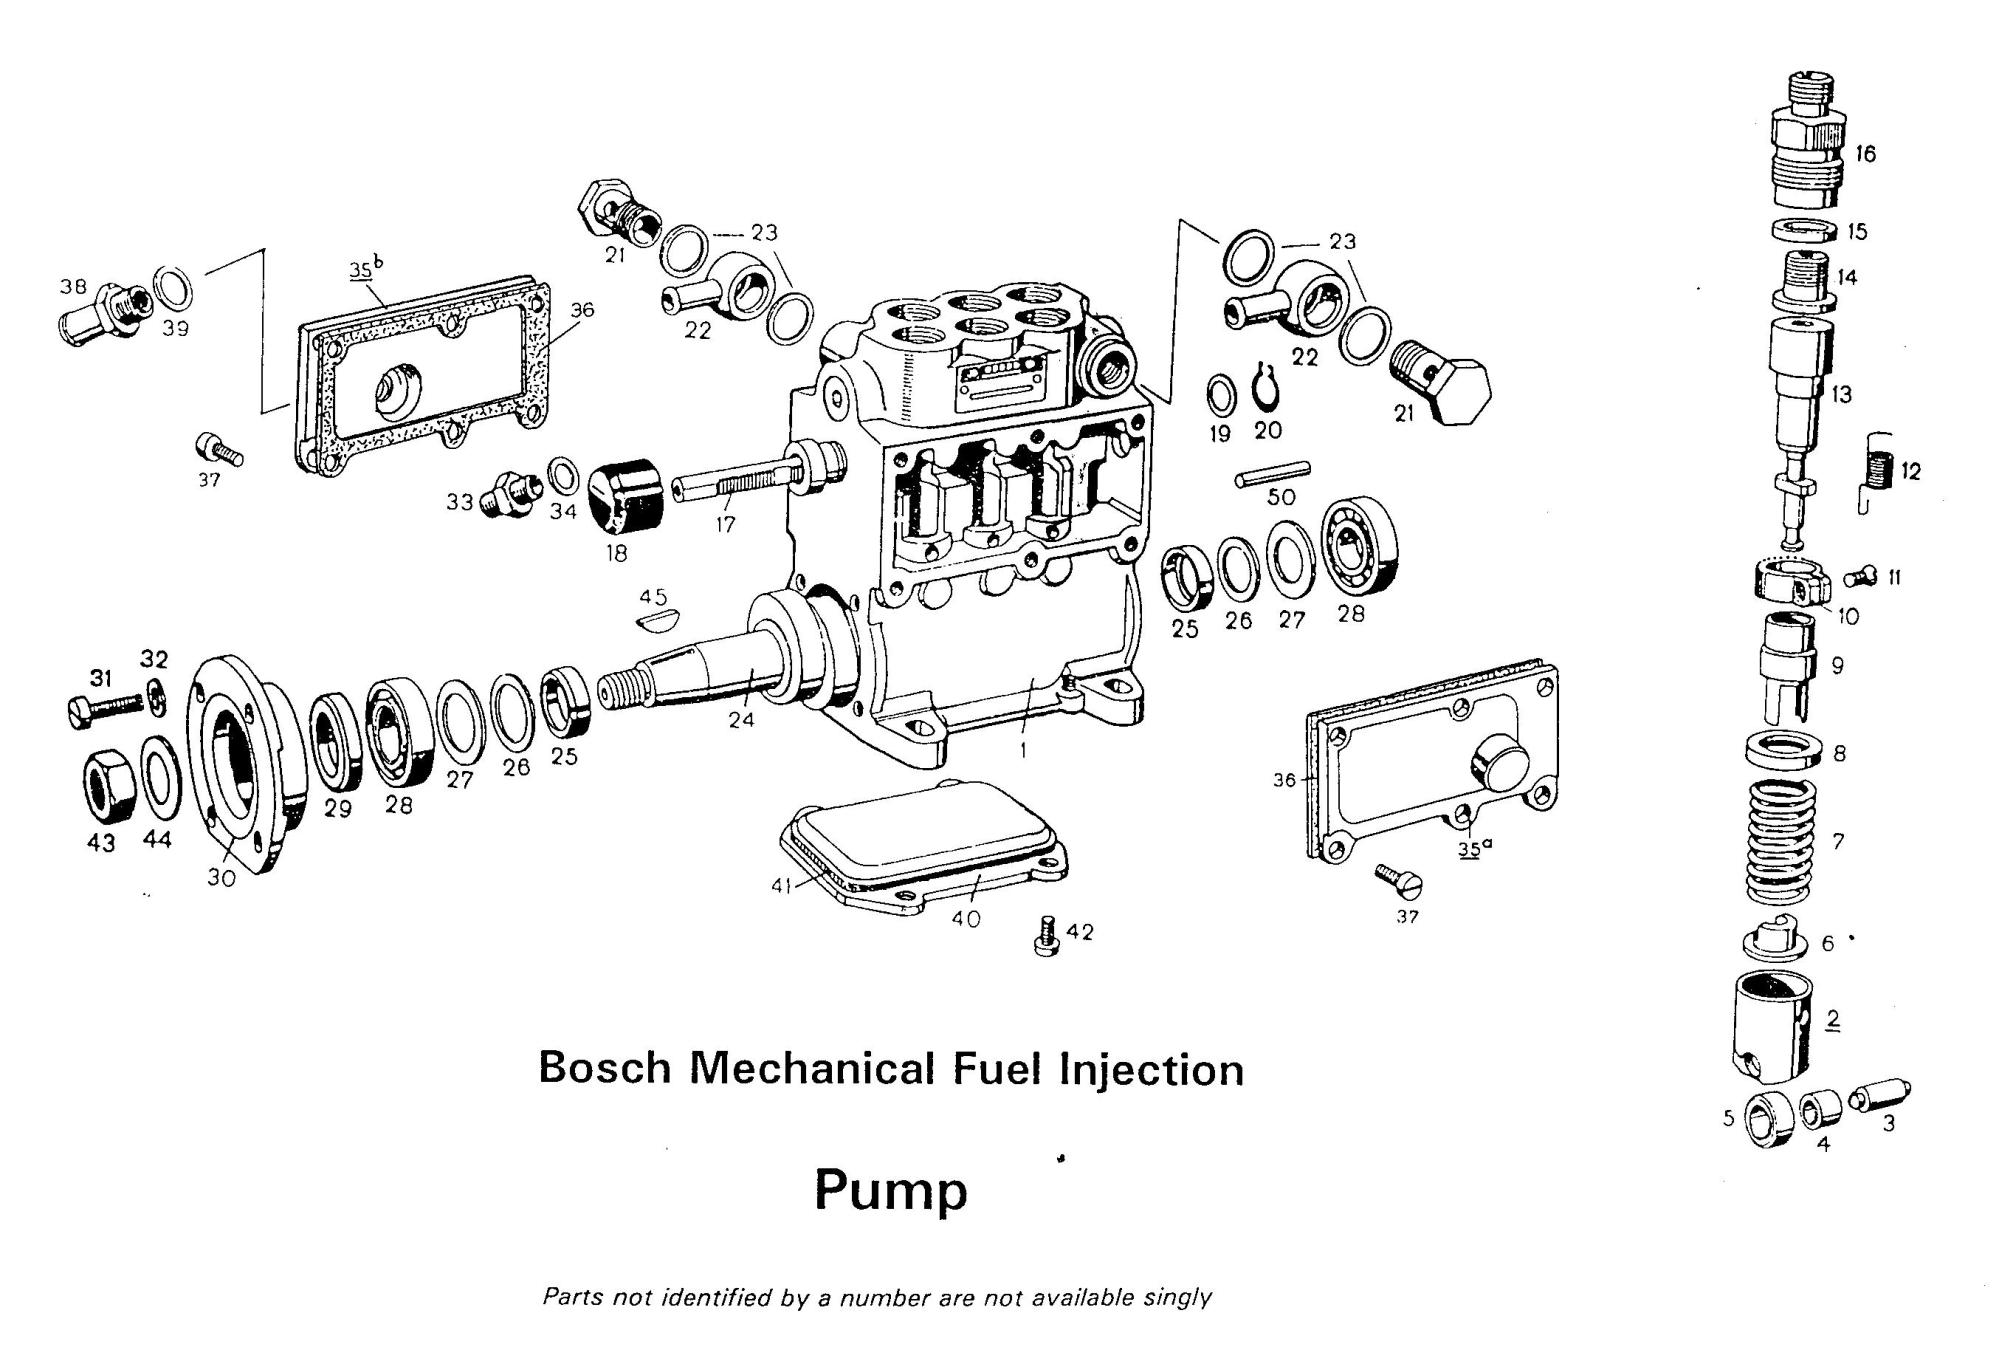 hight resolution of drivewerks com technical articles bosch mechanical lucas cav fuel injection pump diagram cav fuel injection pump